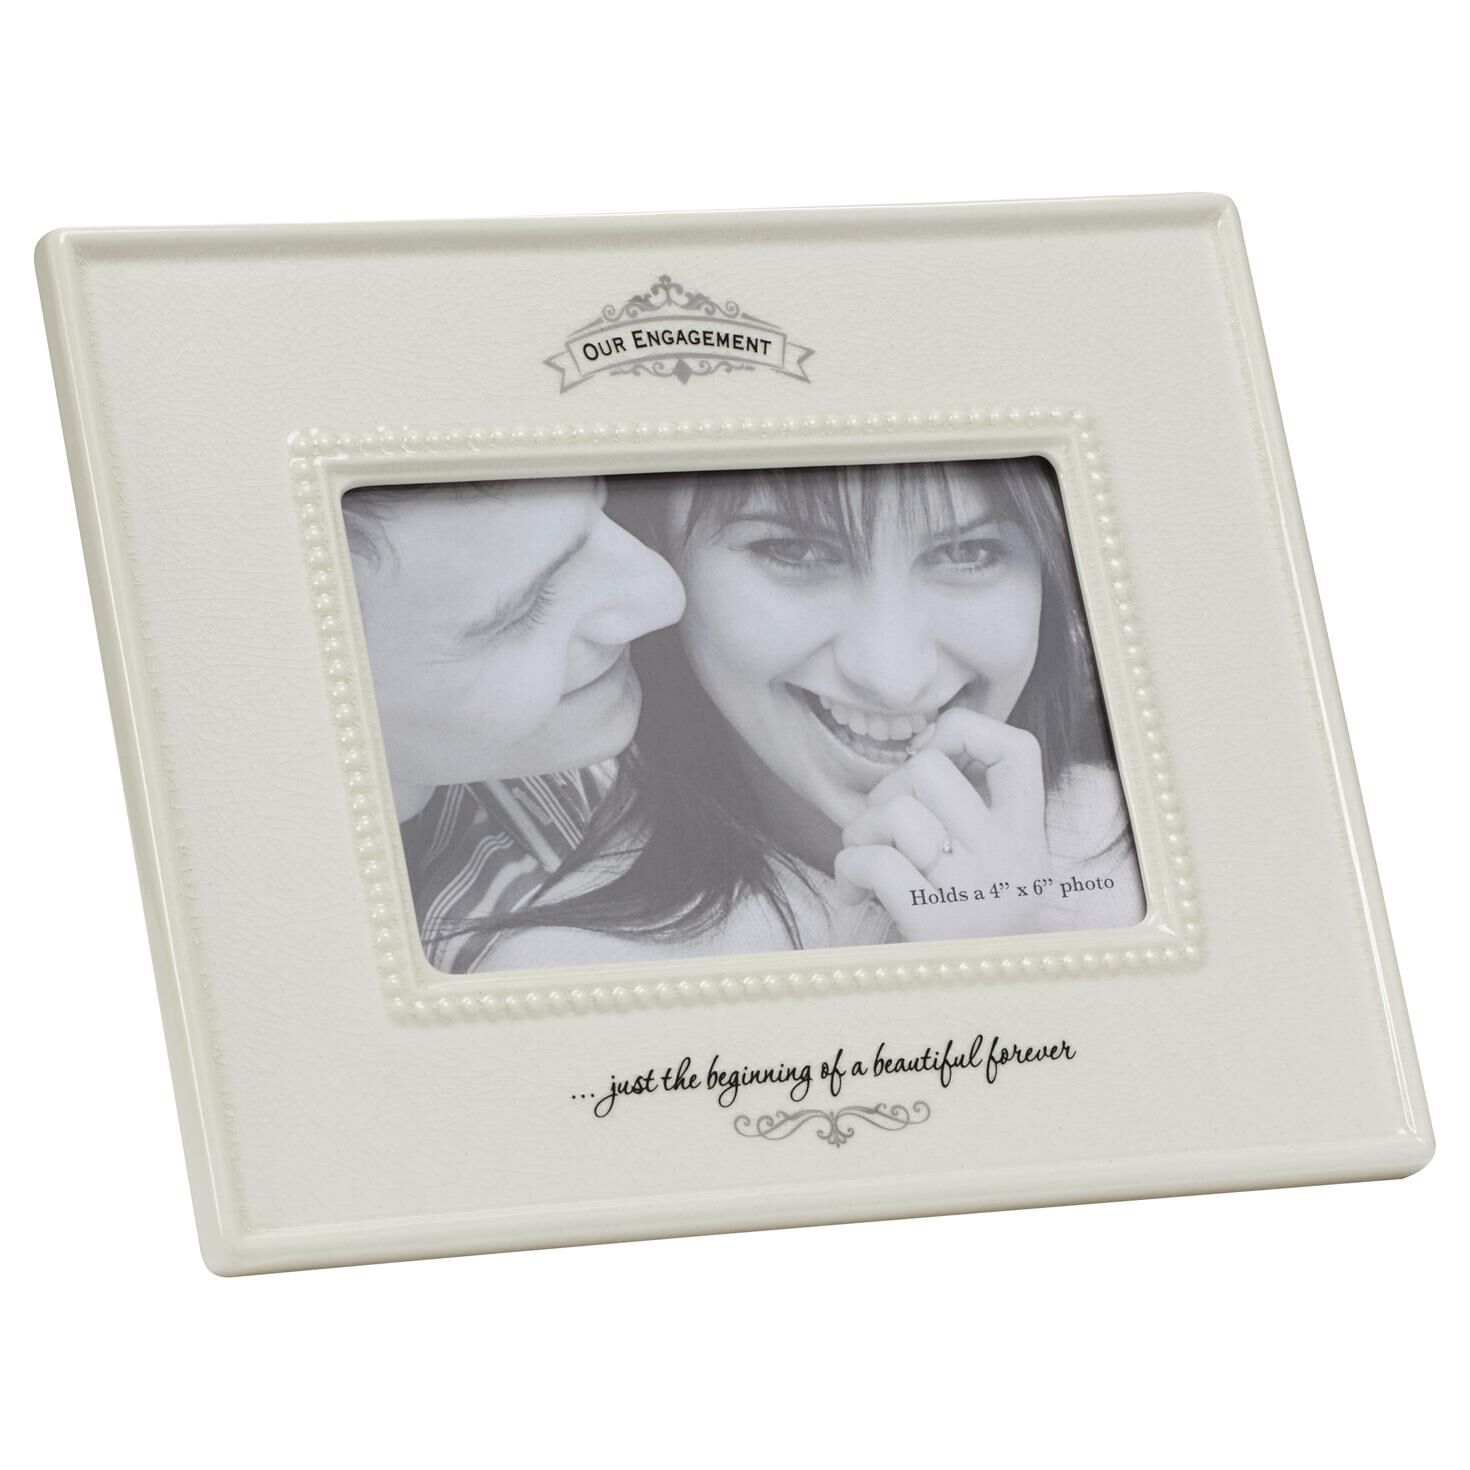 Our Engagement Picture Frame, 4x6 - Picture Frames - Hallmark